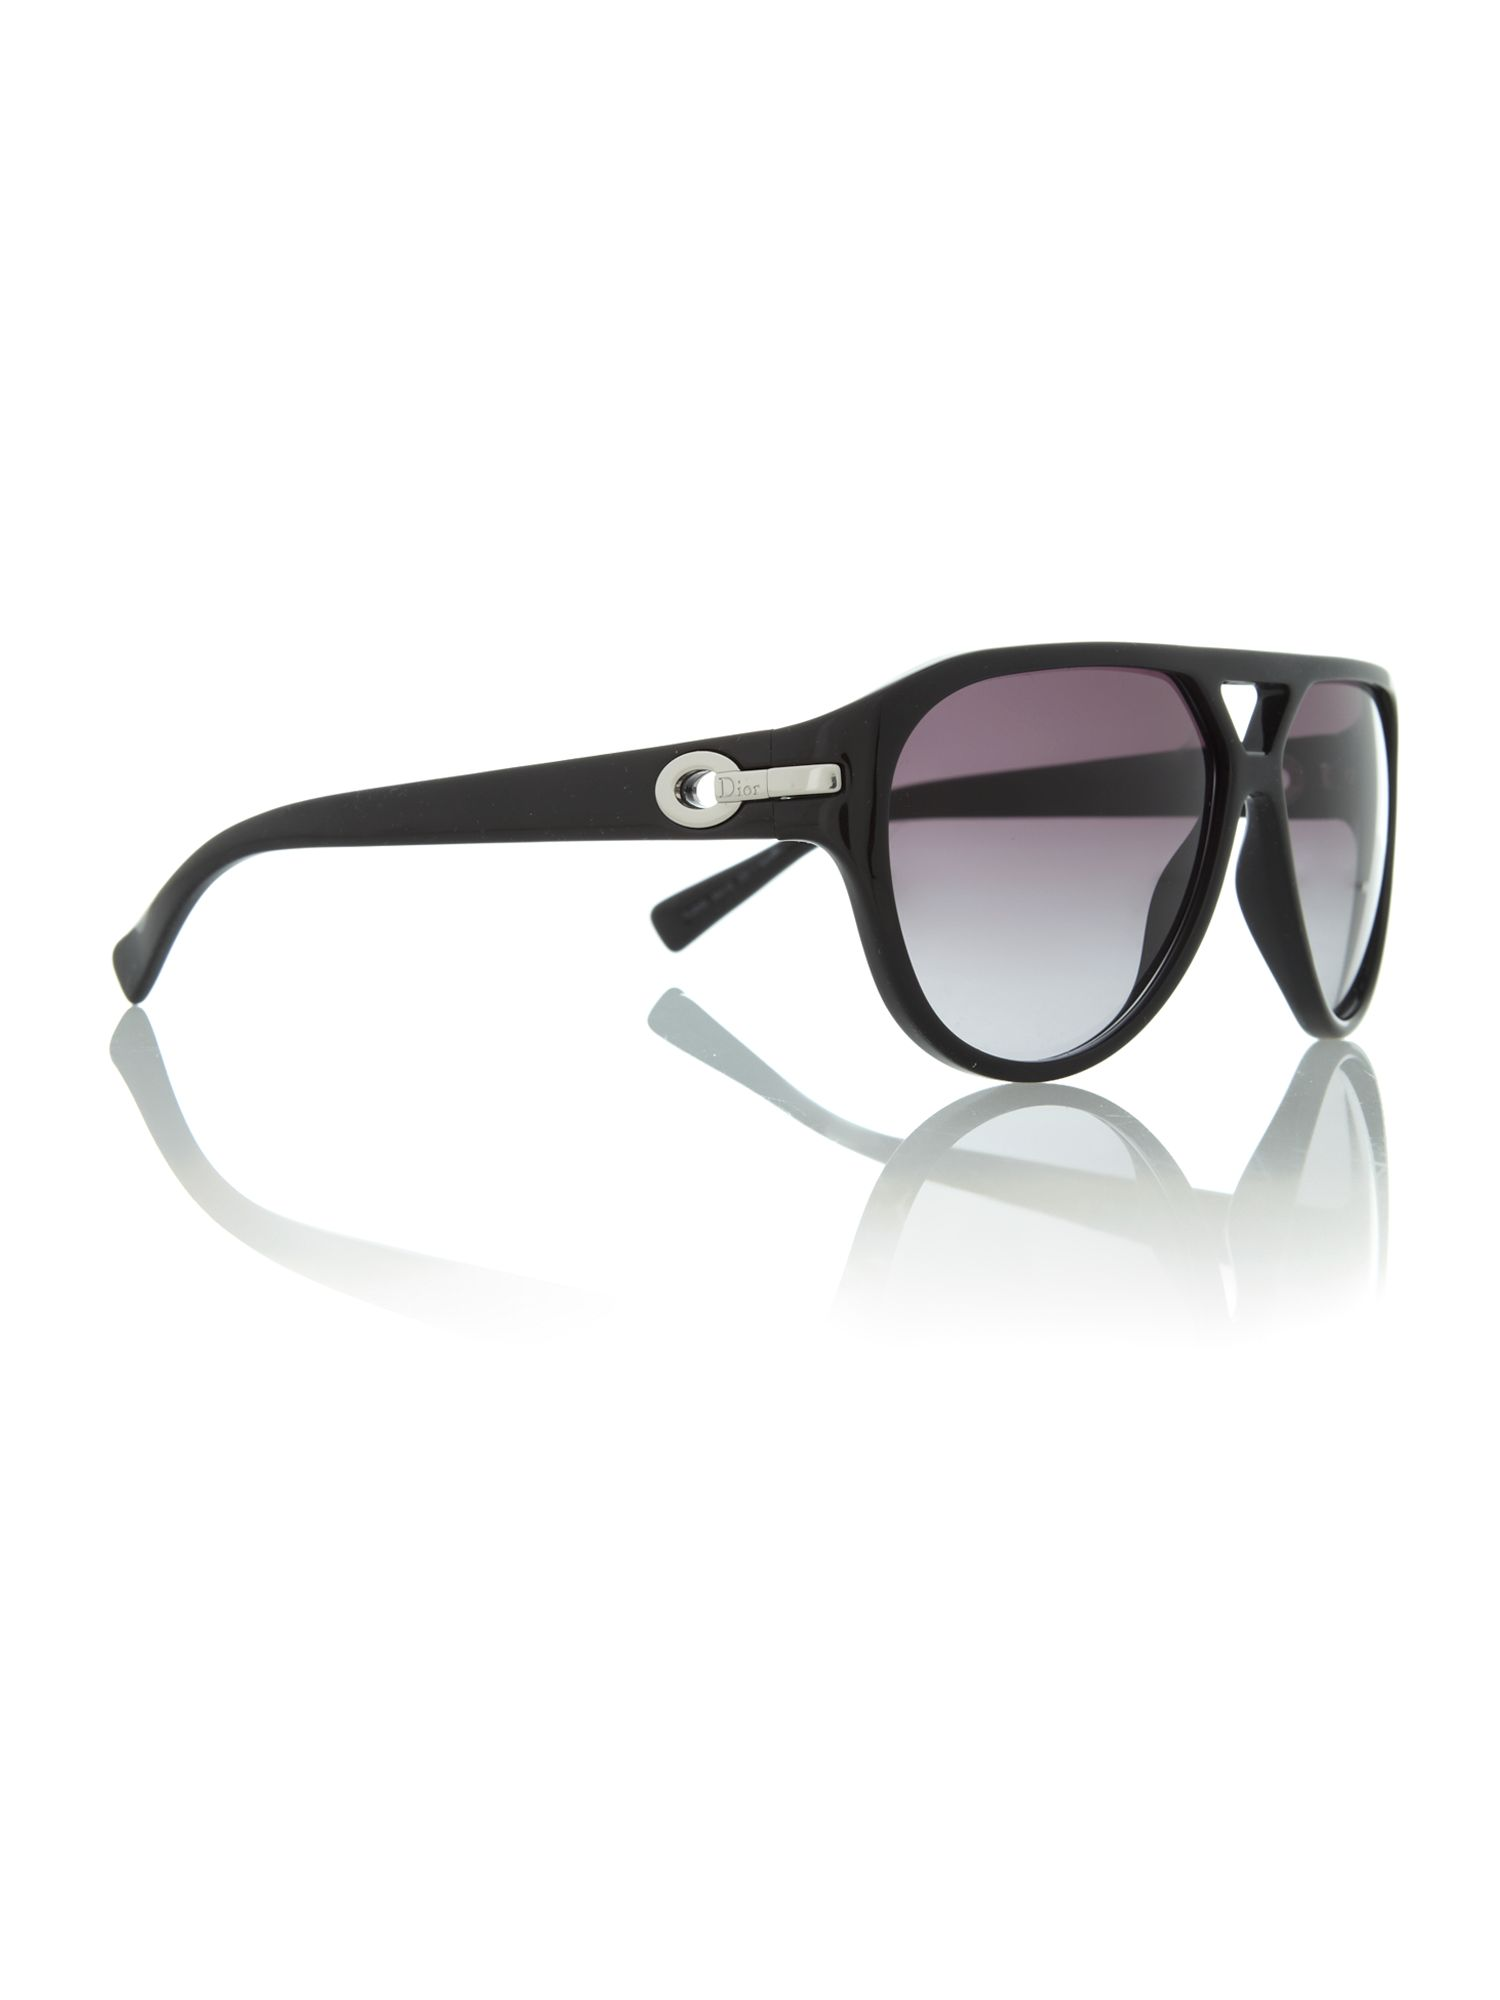 Ladies my MISSDIOR1 shiny black aviator style sun